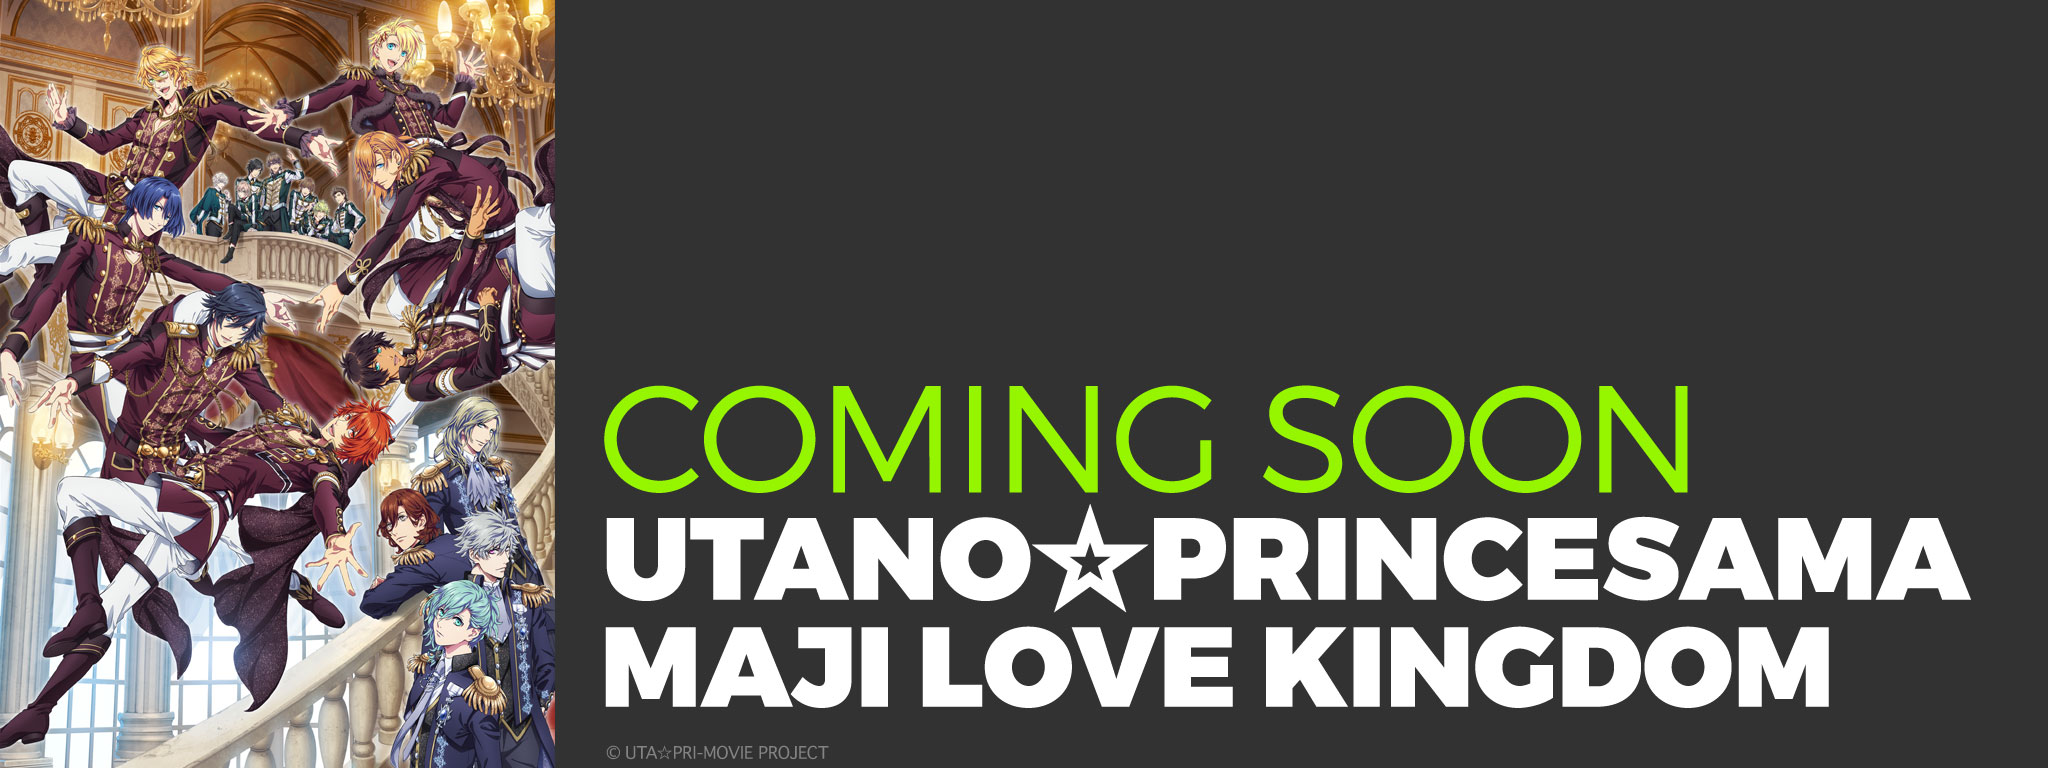 Utano Princesama Maji LOVE Kingdom